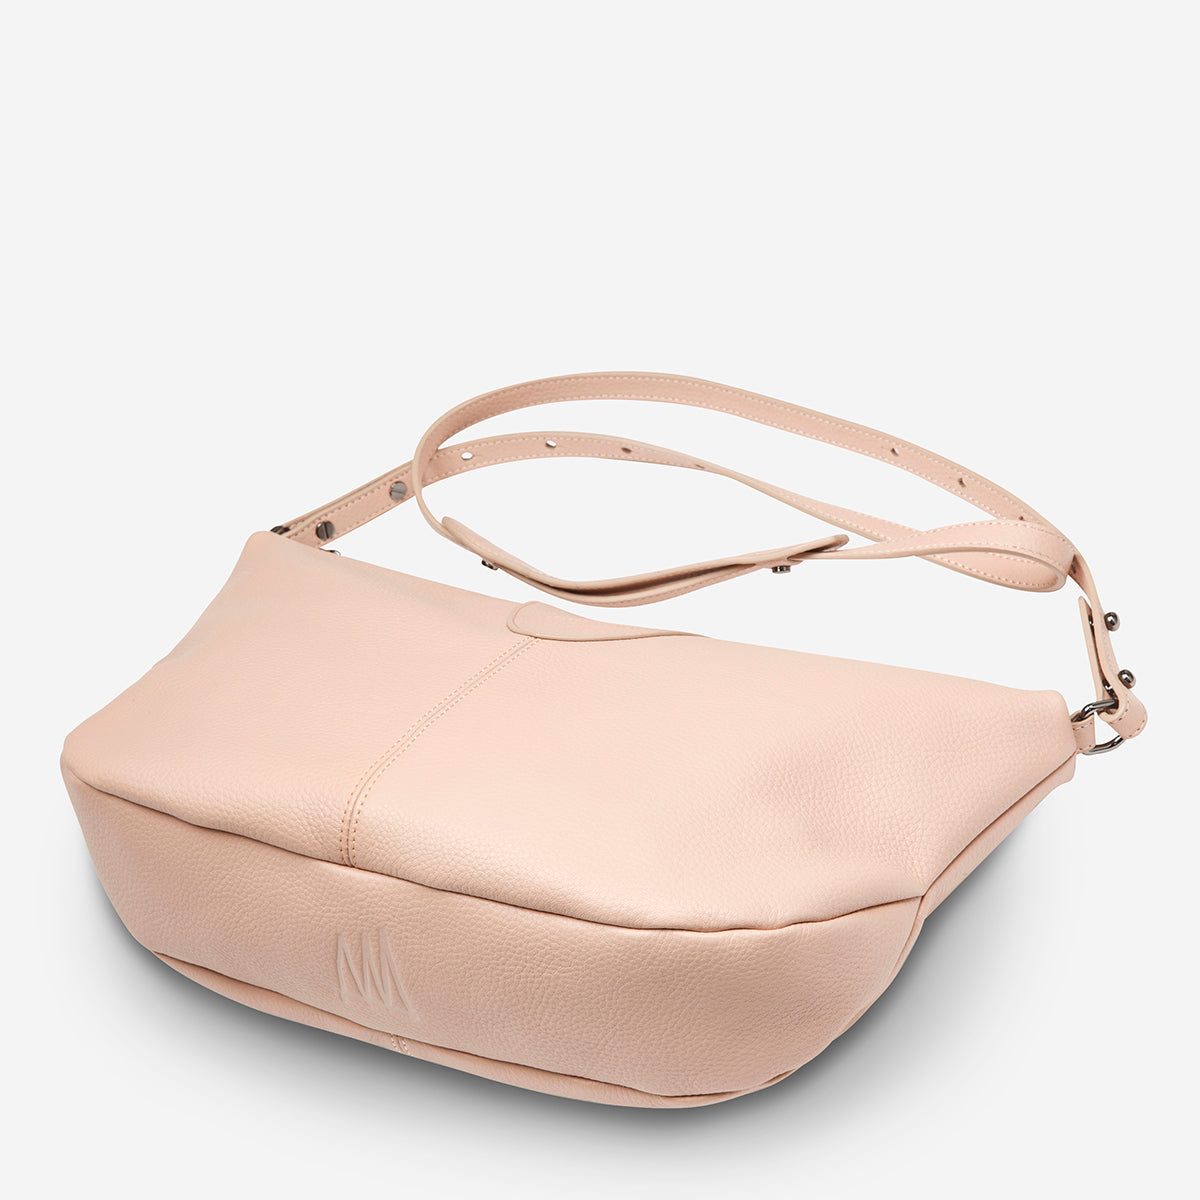 Status Anxiety At A Loss Women's Leather Crossbody Slouch Bag - Pink